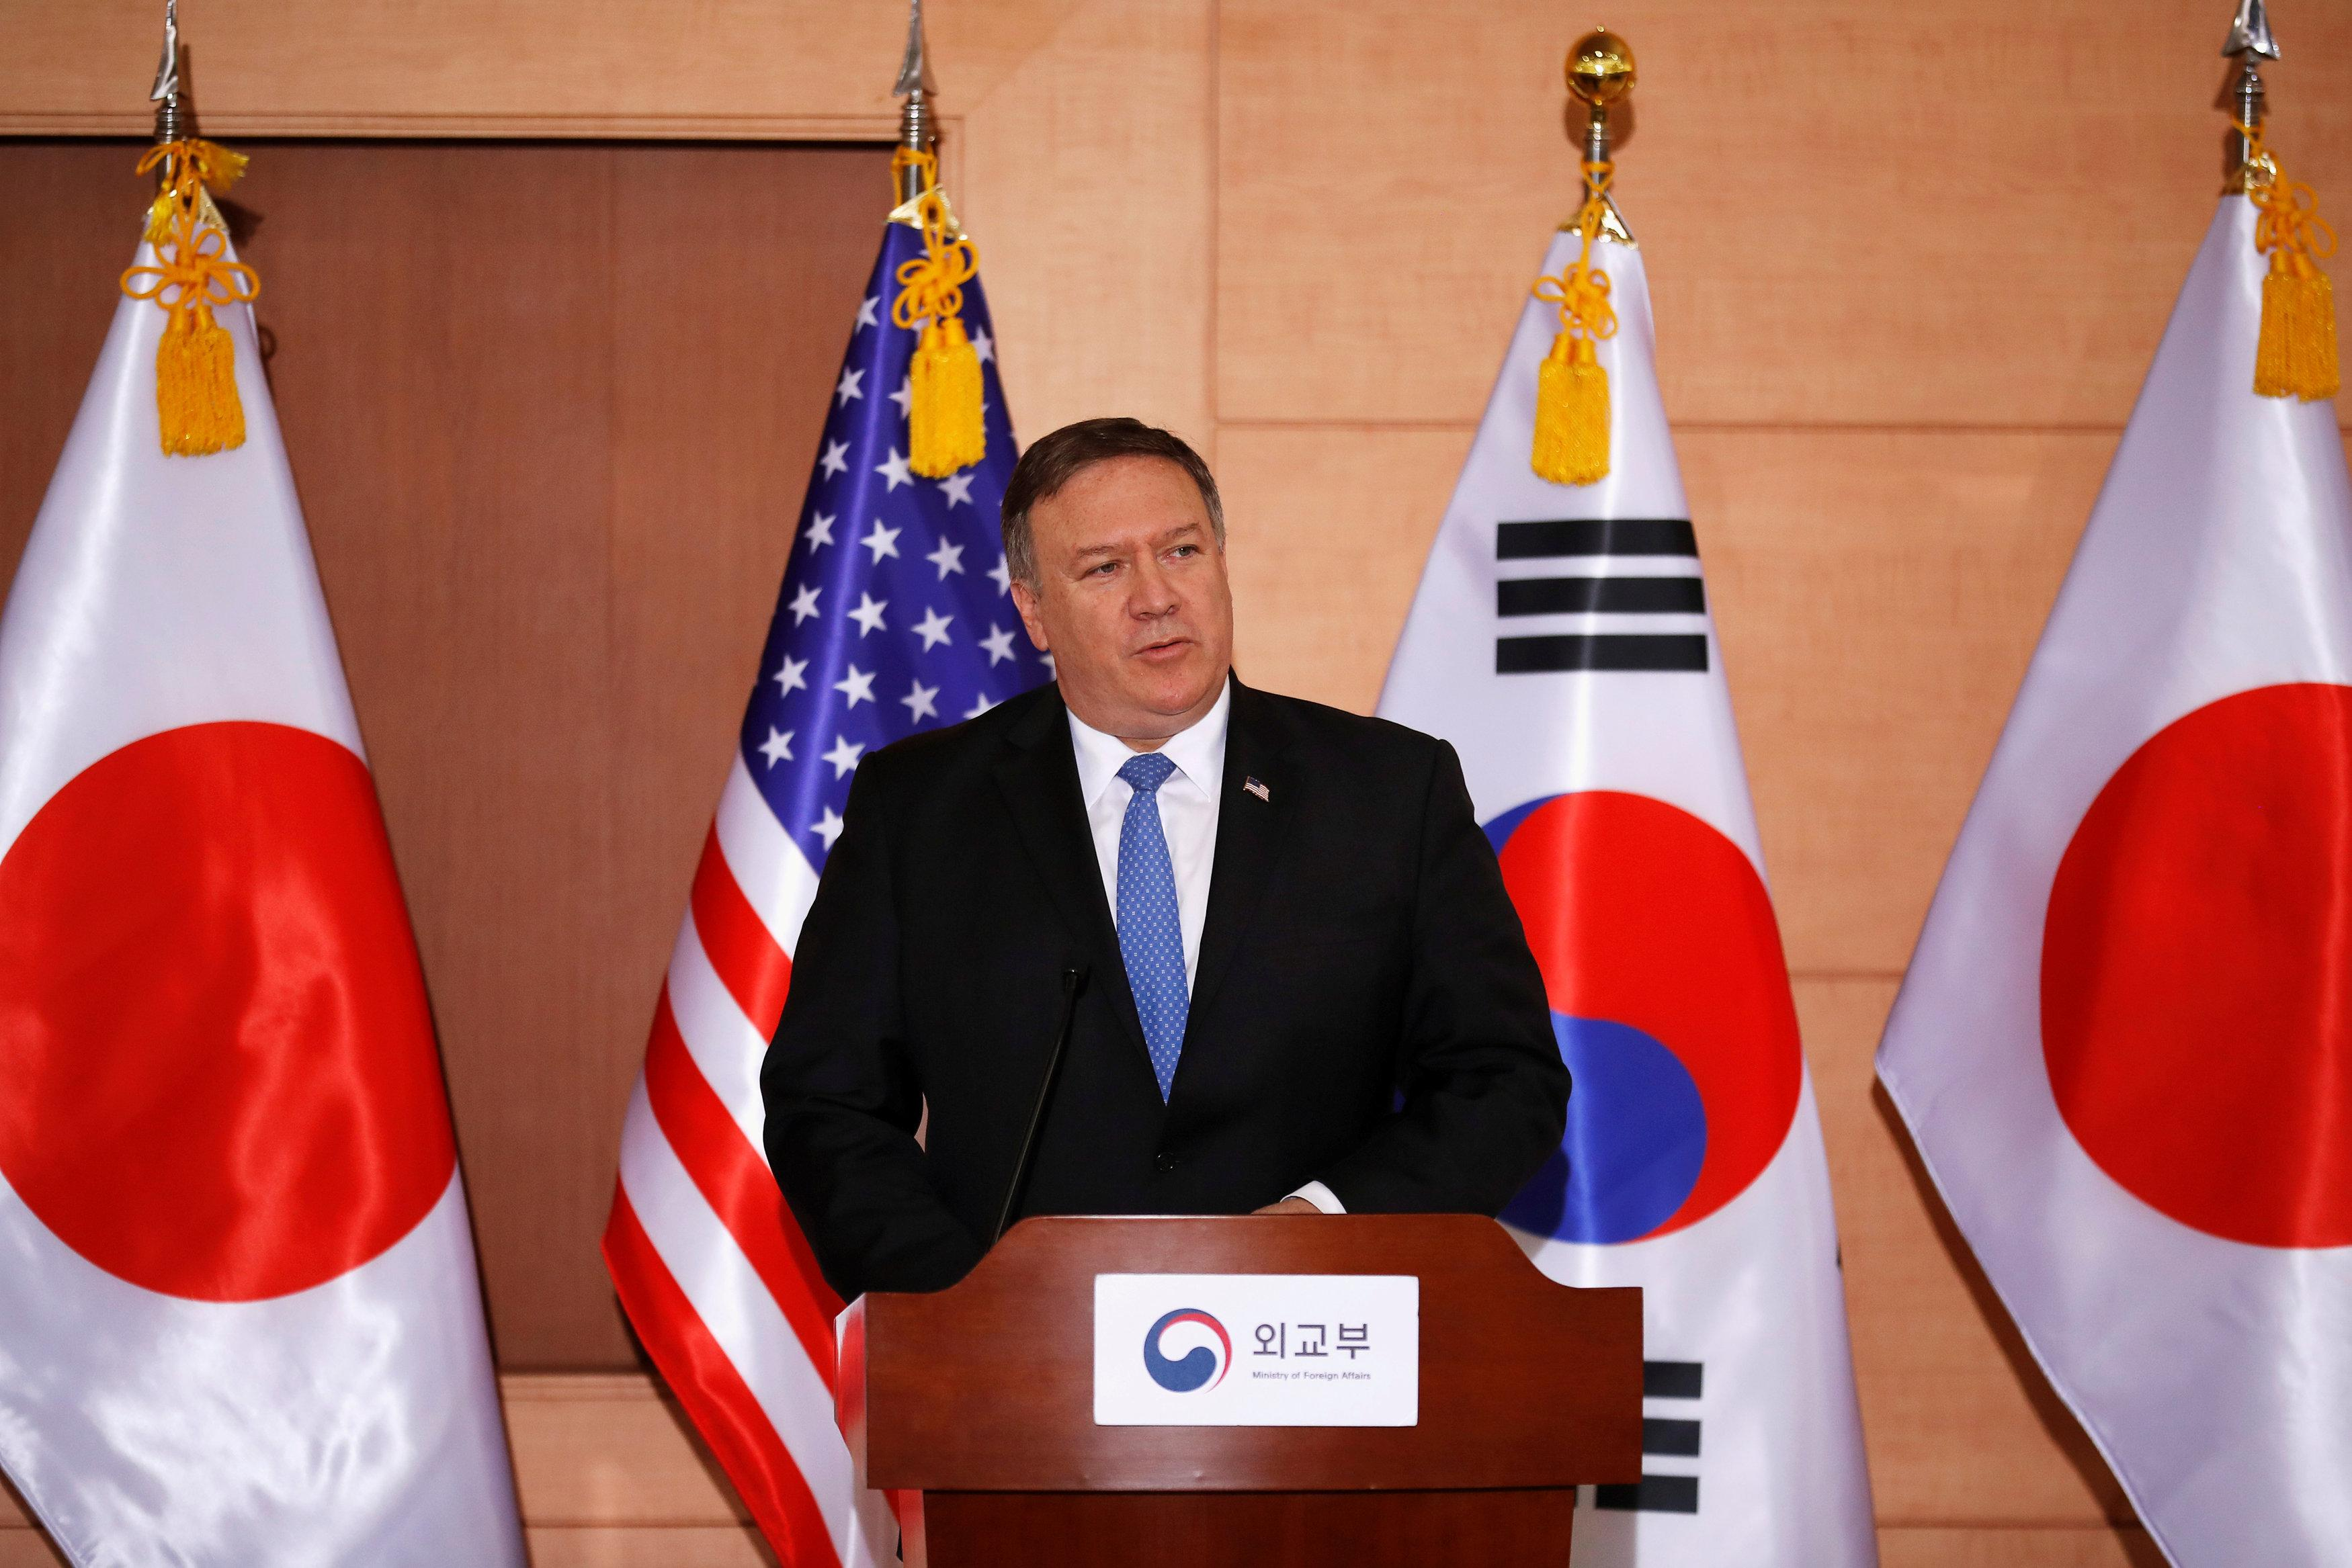 U.S. Secretary of State Mike Pompeo addresses a news conference alongside South Korean Foreign Minister Kang Kyung-wha and Japan's Foreign Minister Taro Kono at the Foreign Ministry in Seoul, South Korea June 14, 2018. Kim Hong-ji